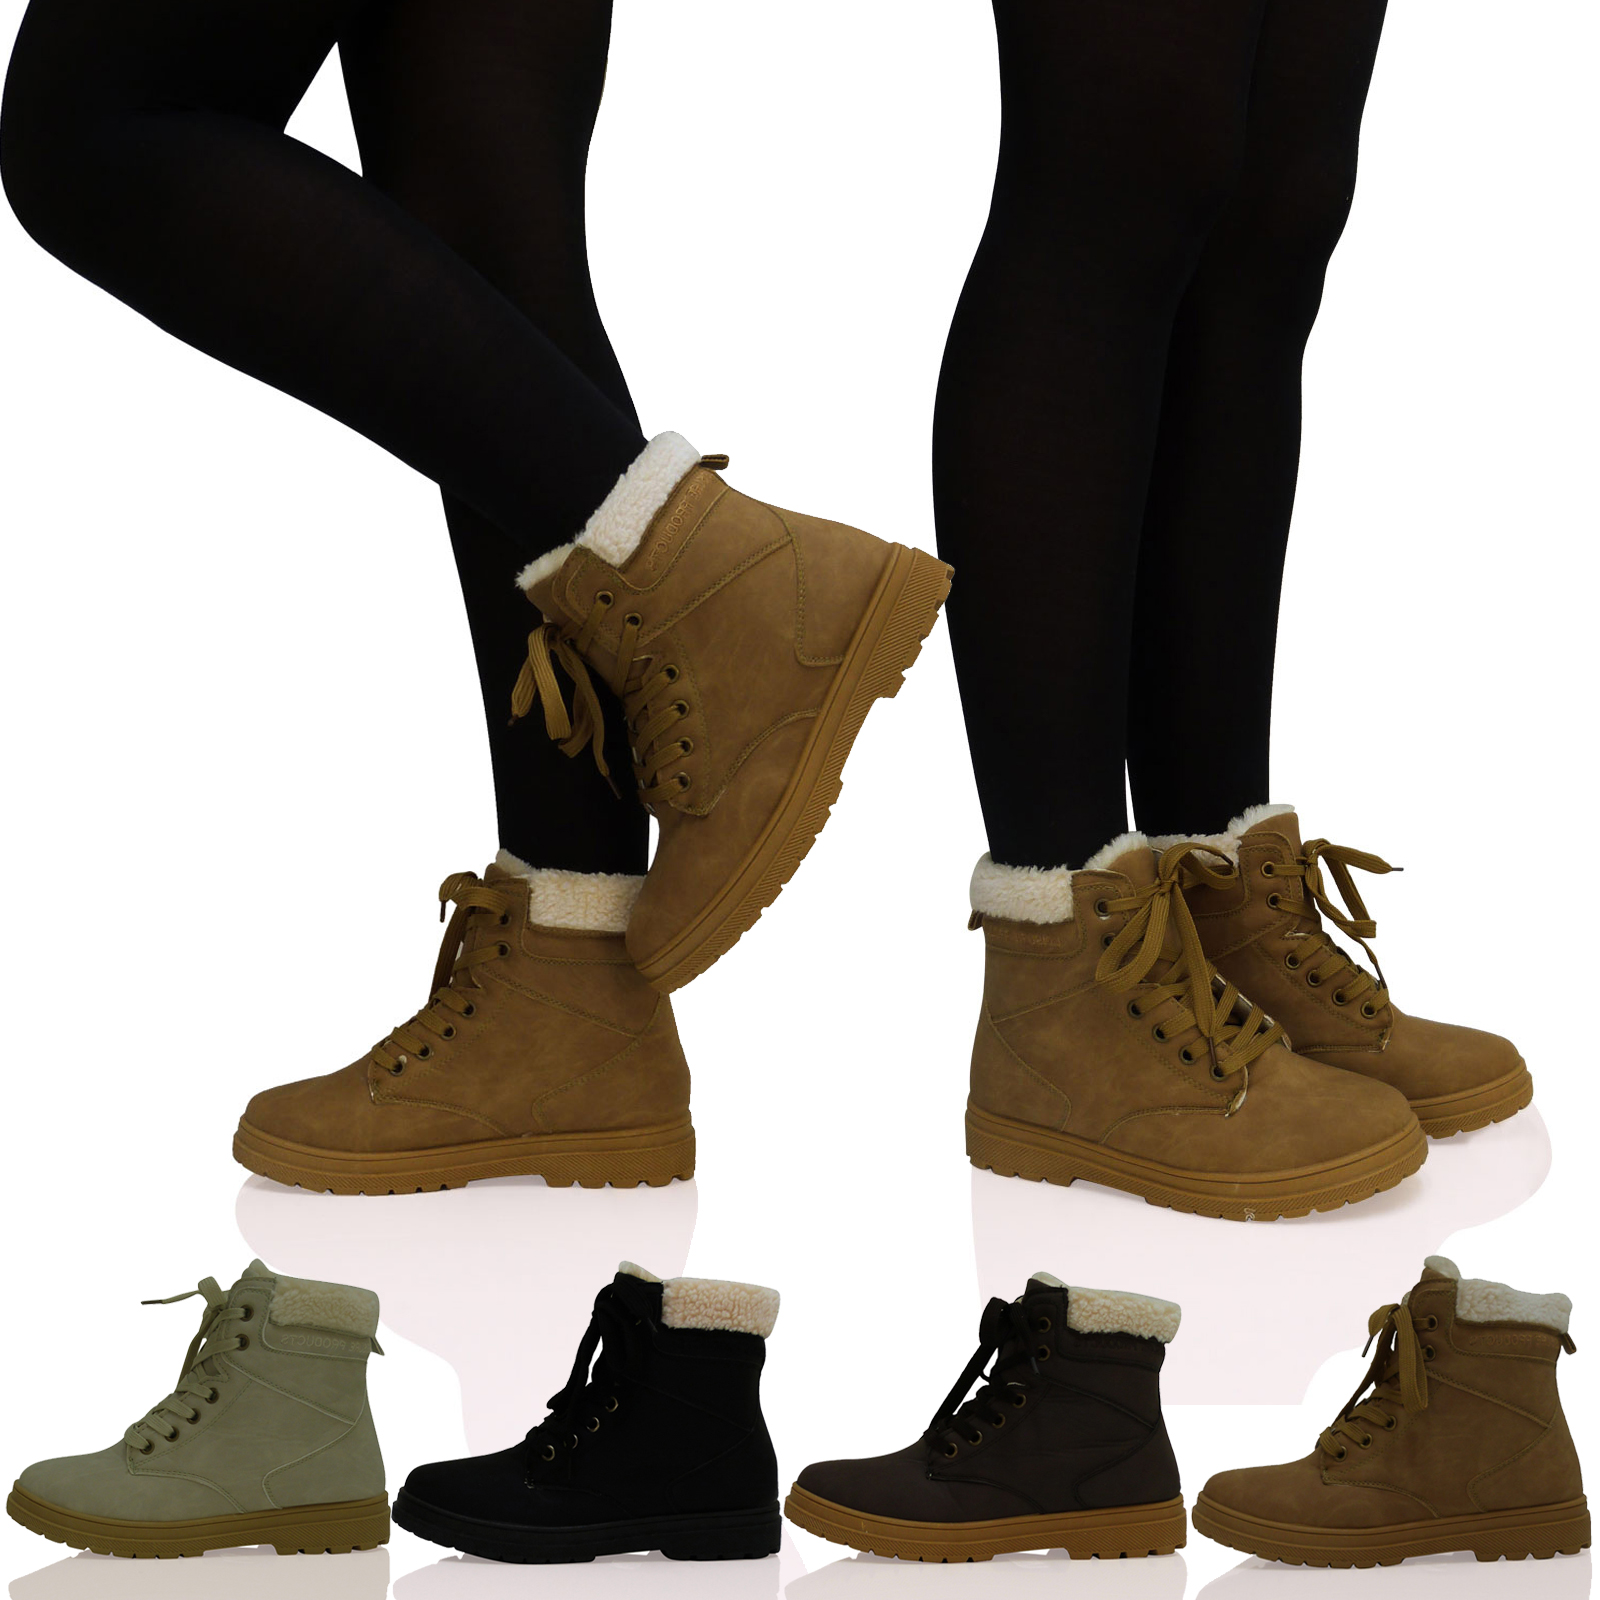 LADIES WOMENS GIRLS LACE UP FUR LINED WINTER ANKLE GRIP SOLE BOOTS ...